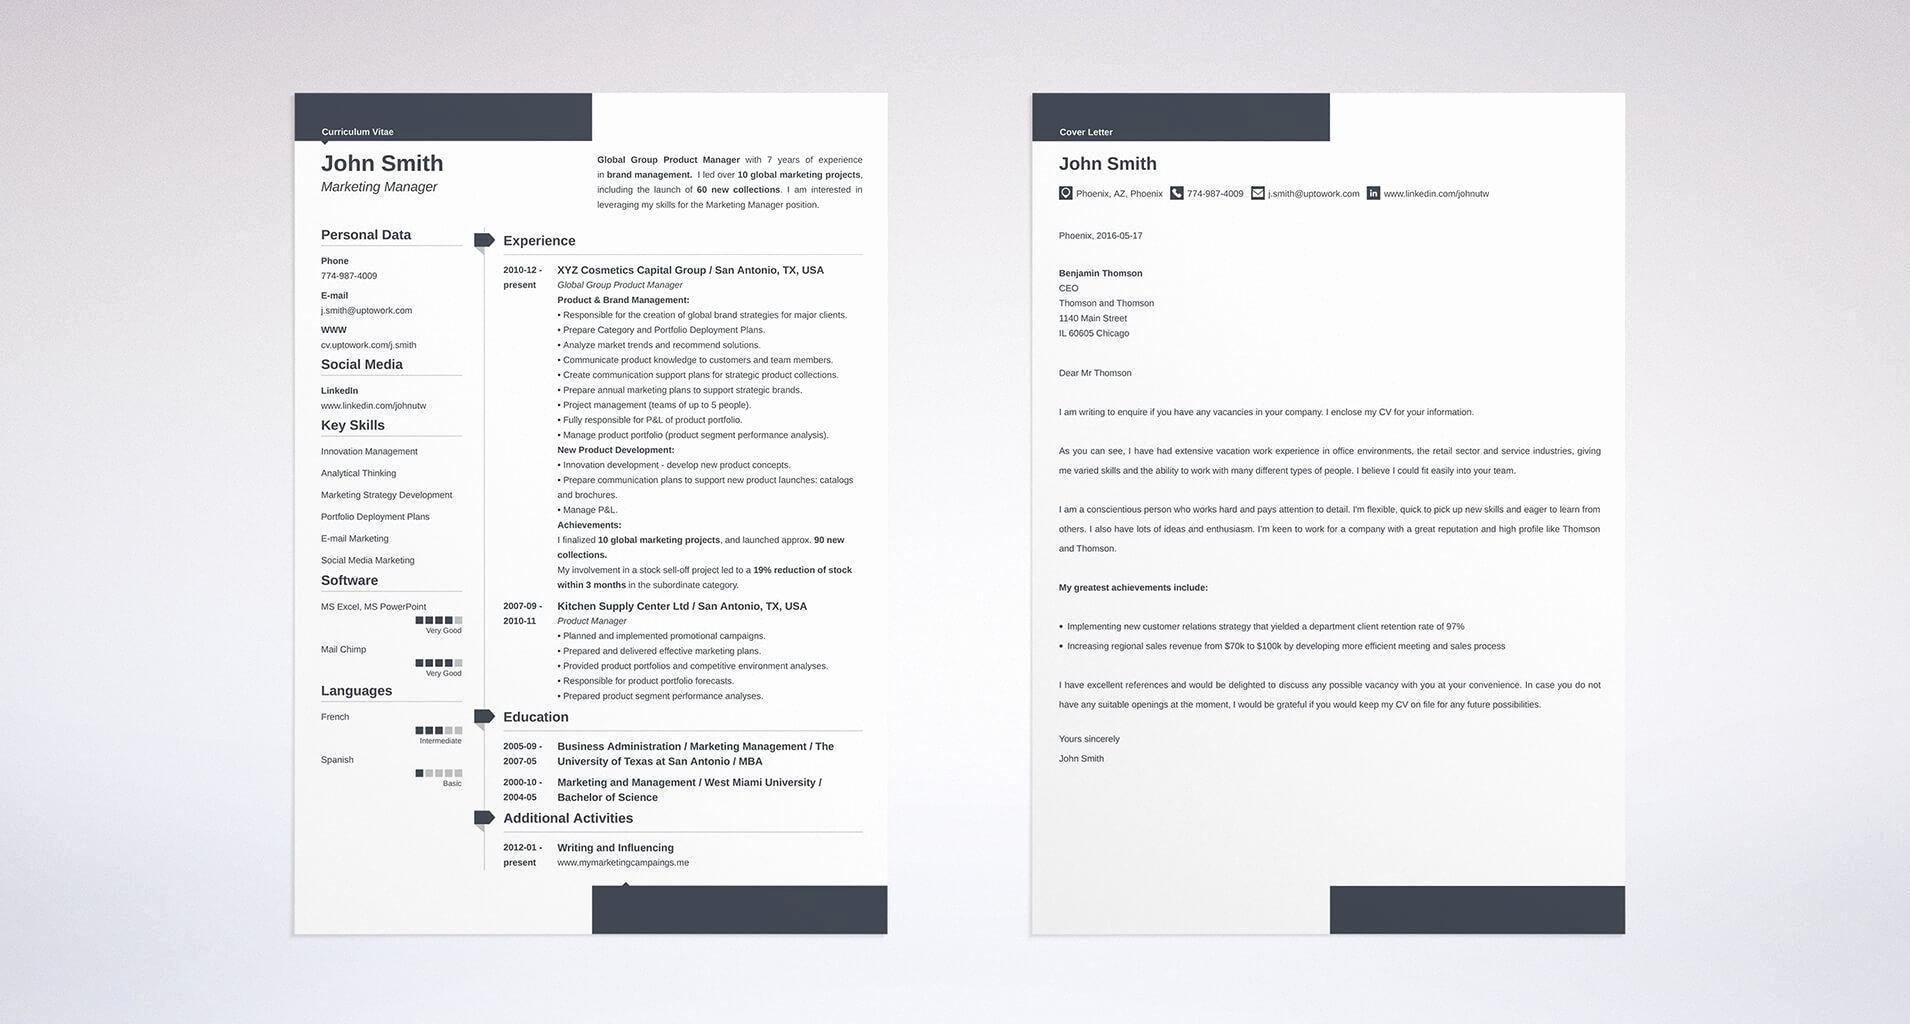 Product Manager Resume Template Fresh Product Manager Resume Sample and Plete Guide [ 20